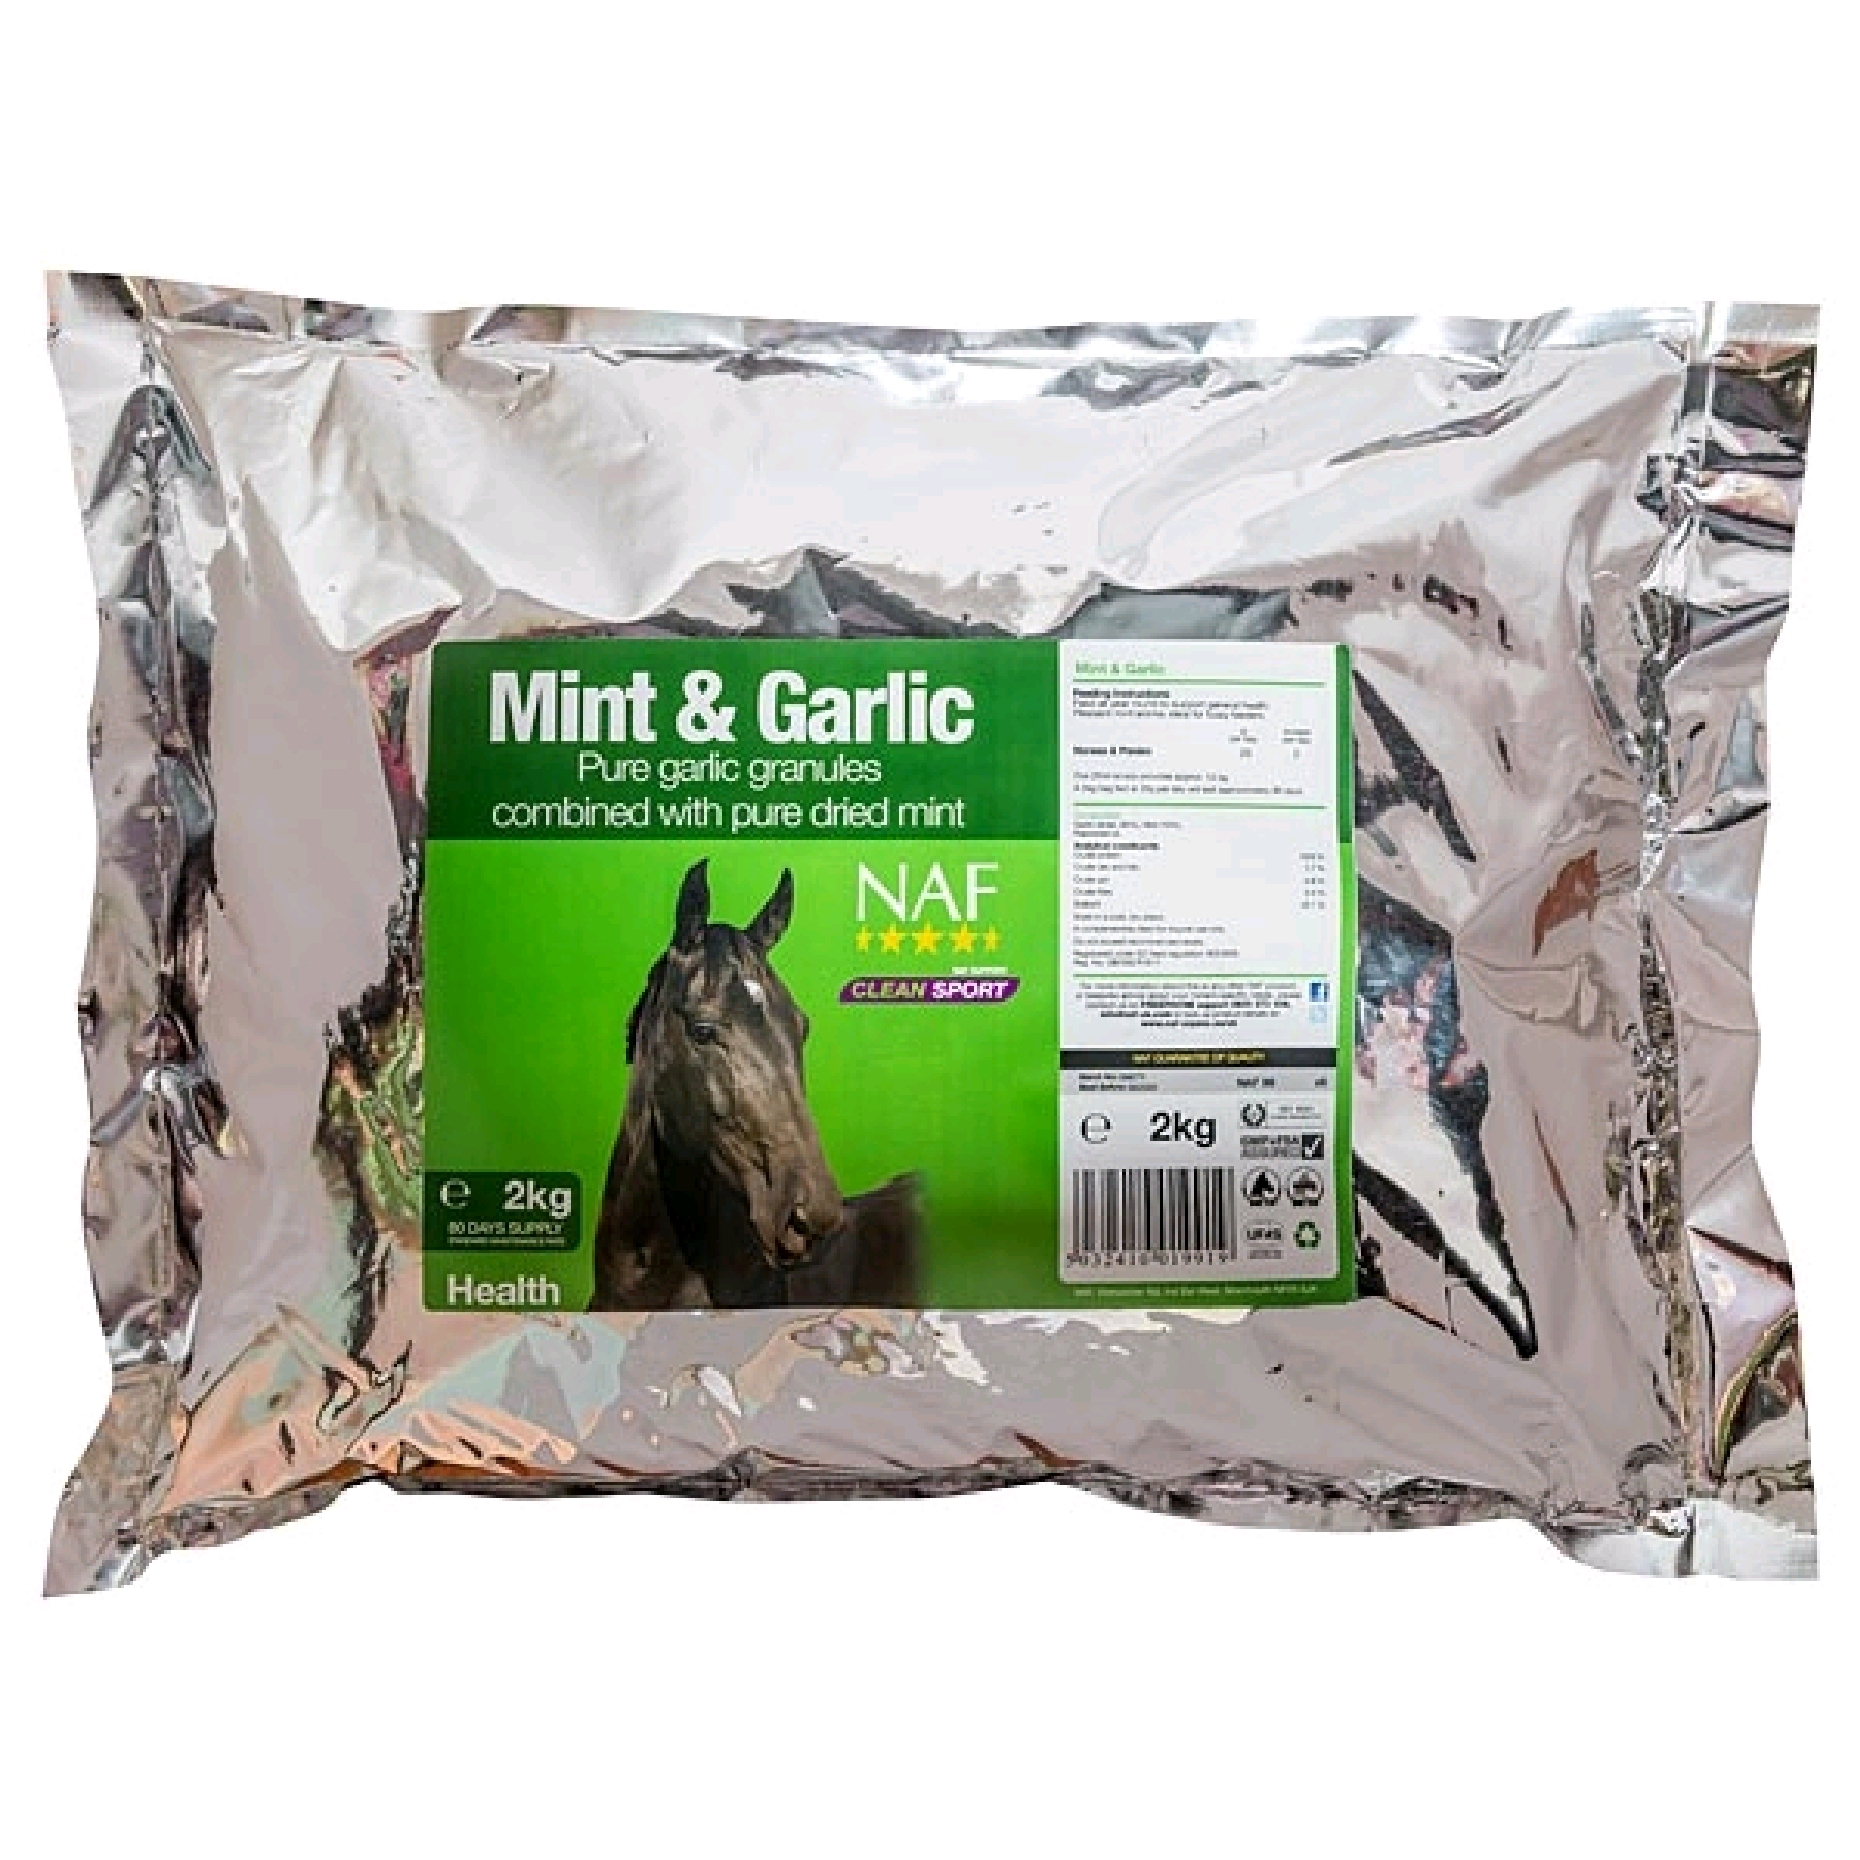 NAF Mint & Garlic Mix Refill